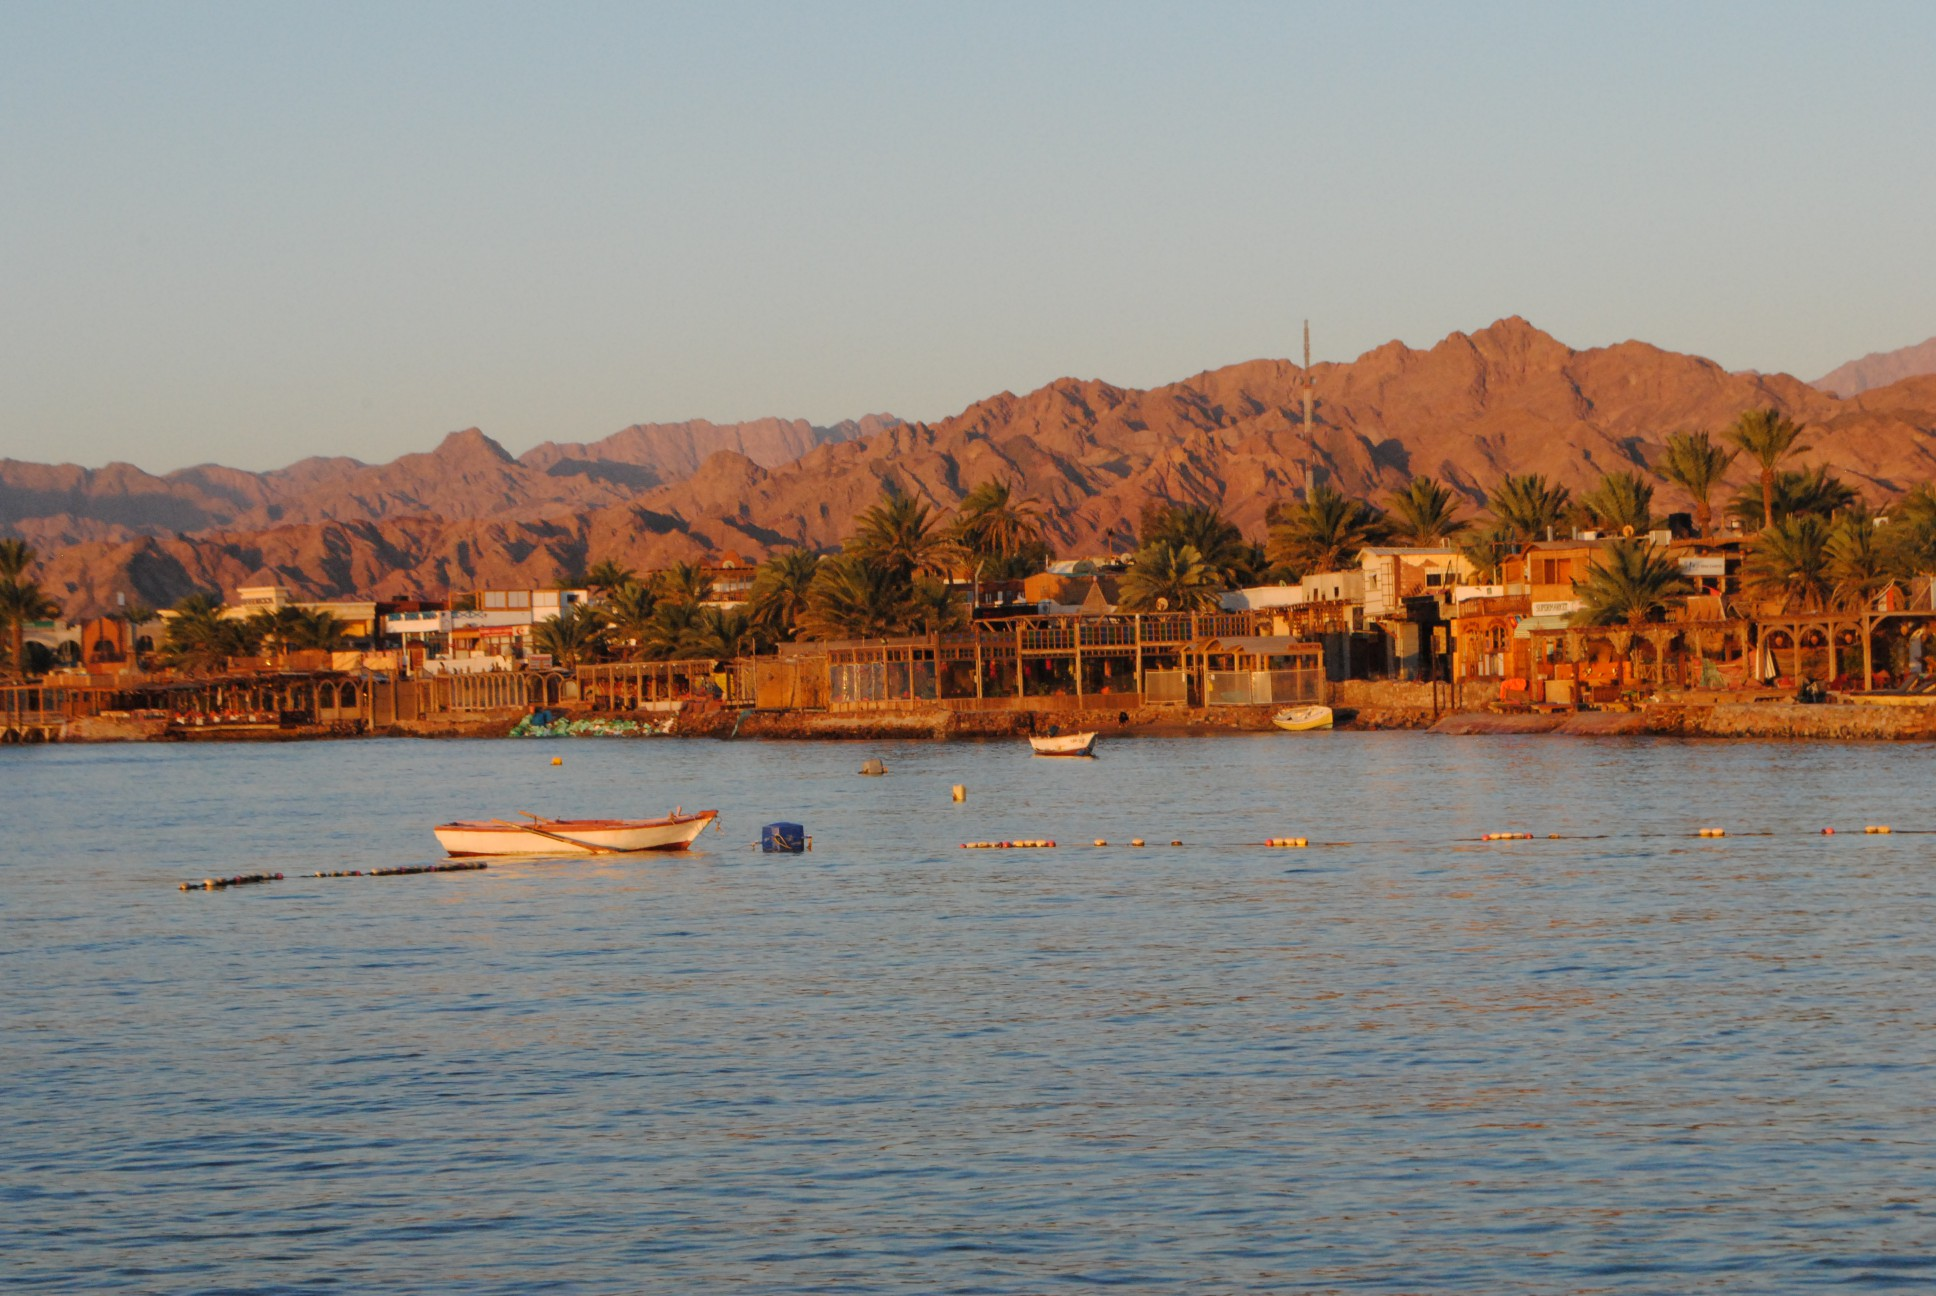 Sunrise over Dahab.